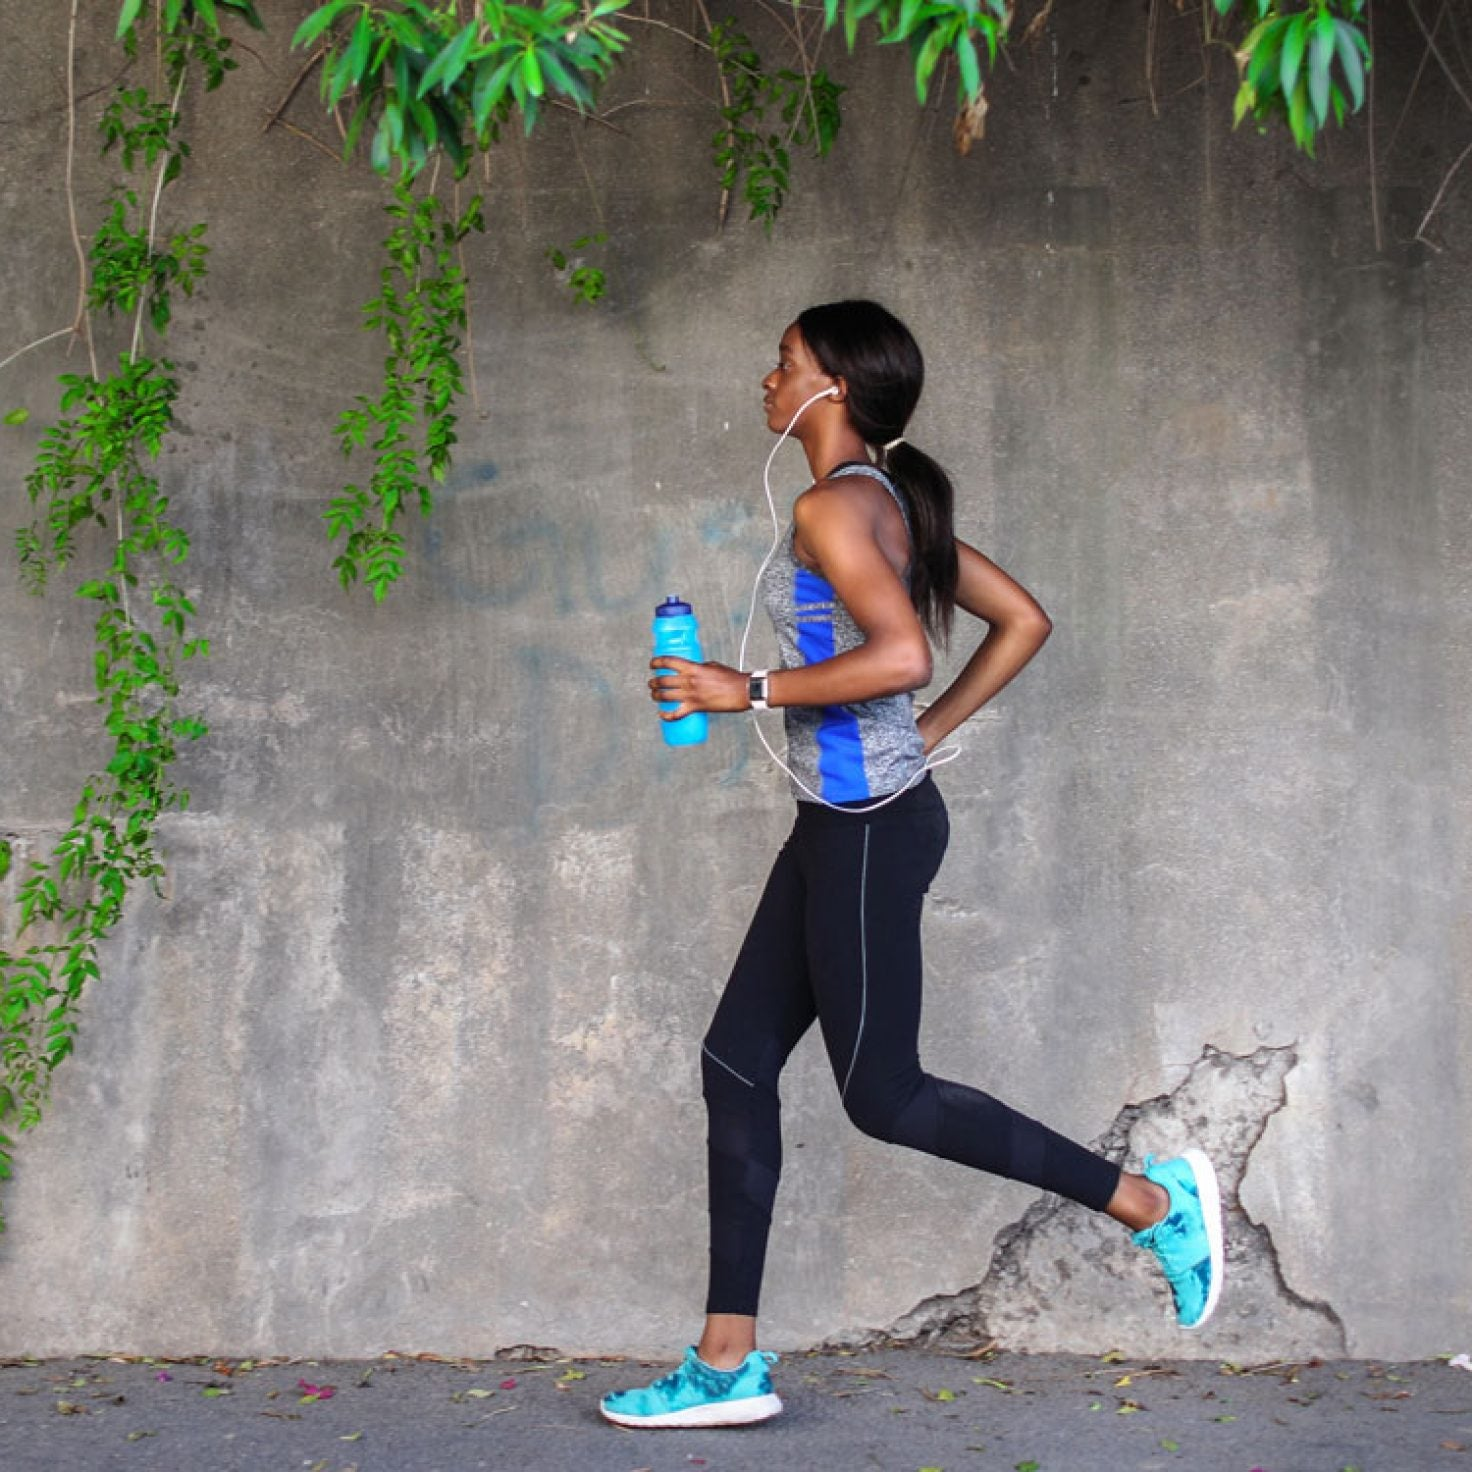 Brooks Running Is Donating 10,000 Pairs Of Shoes To Health Care Professionals